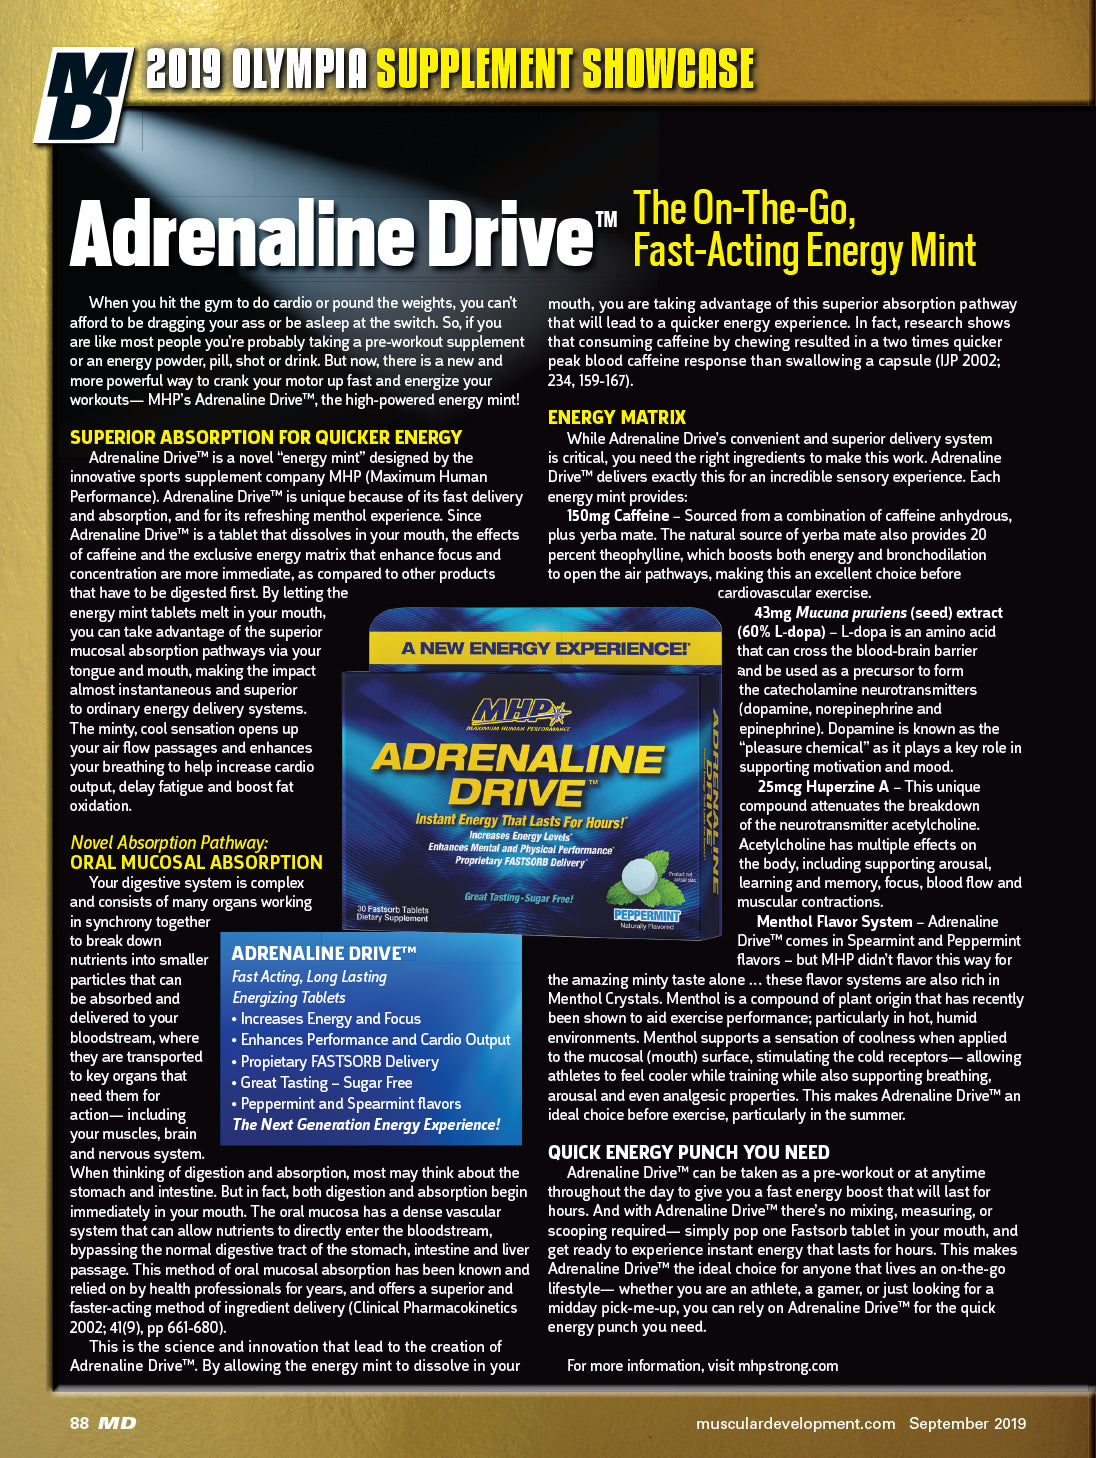 Adrenaline Drive Article in MD